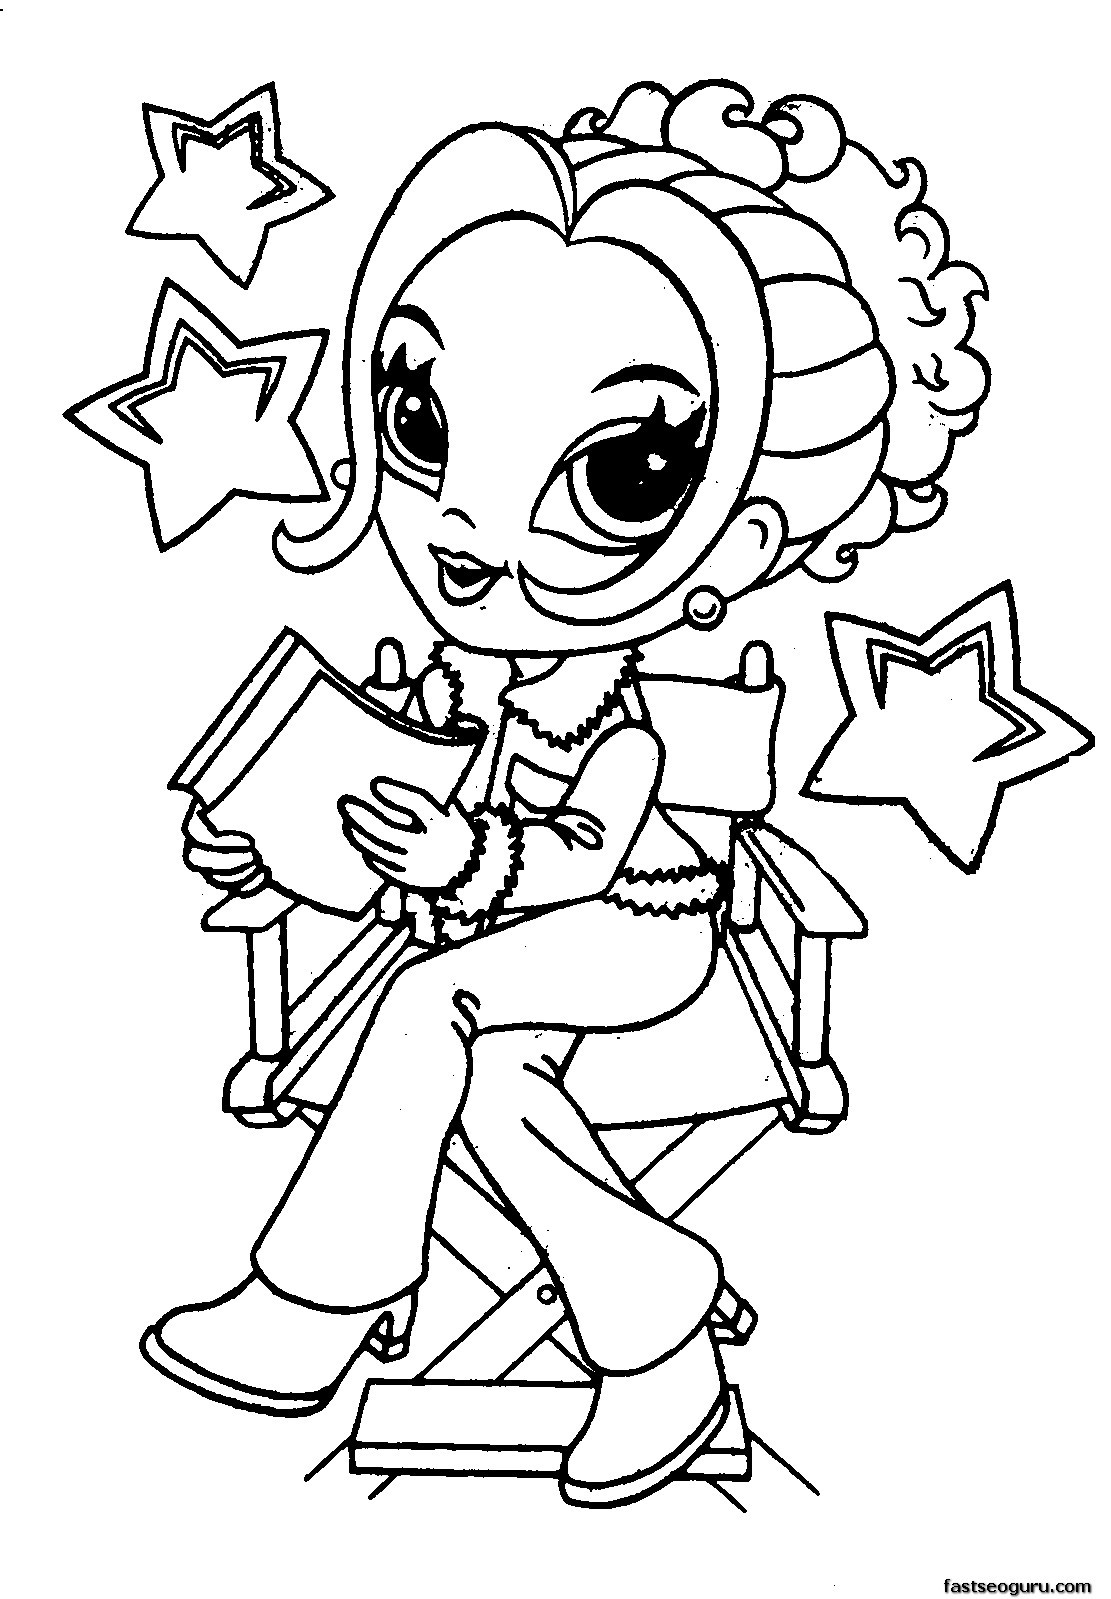 Best ideas about Coloring Sheets For Girls 8-10 . Save or Pin coloring pages for girls 10 and up Now.